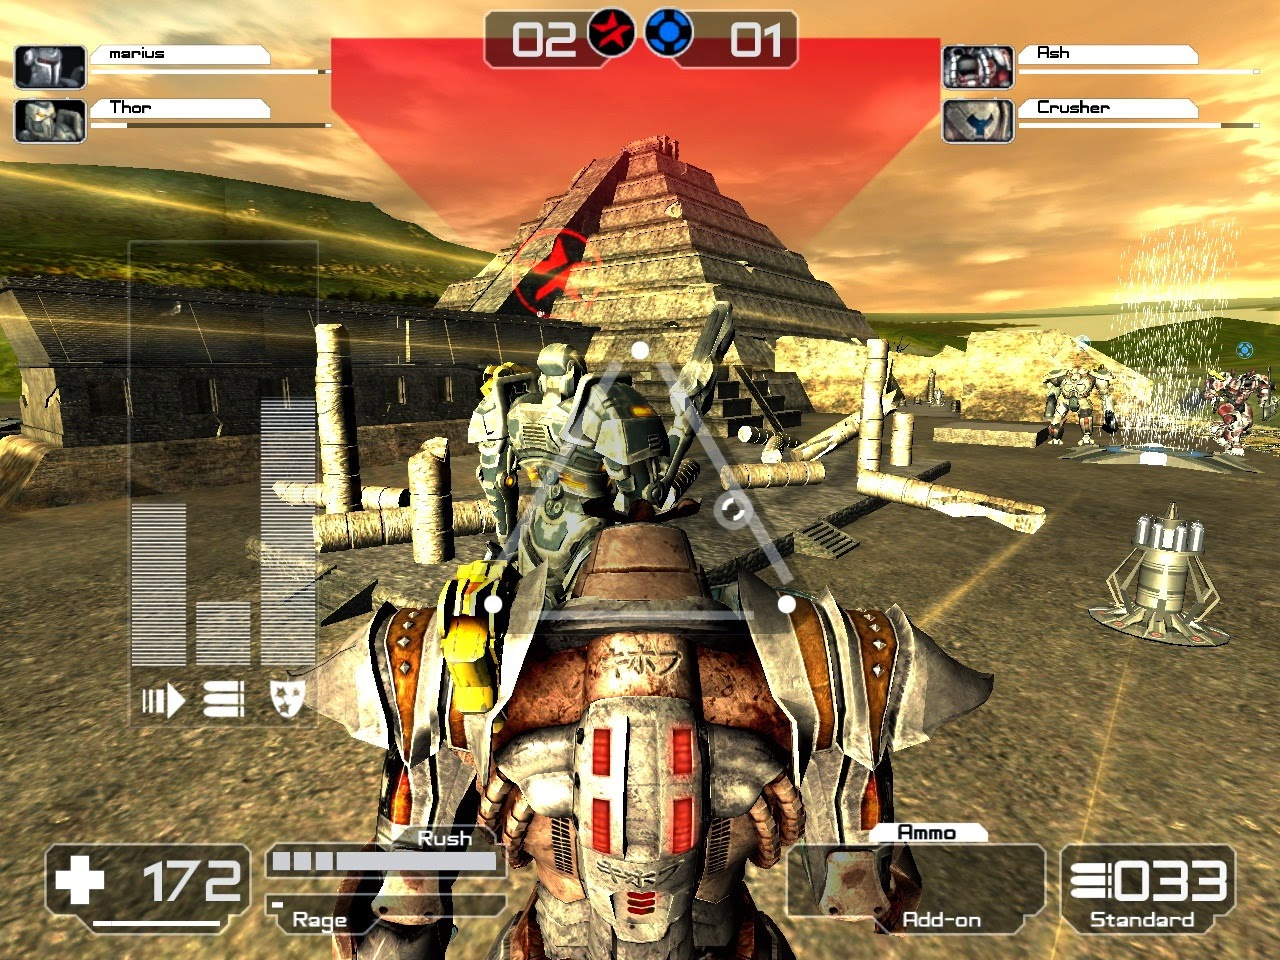 Battle Rage The Robot Wars Untuk Komputer Full Version